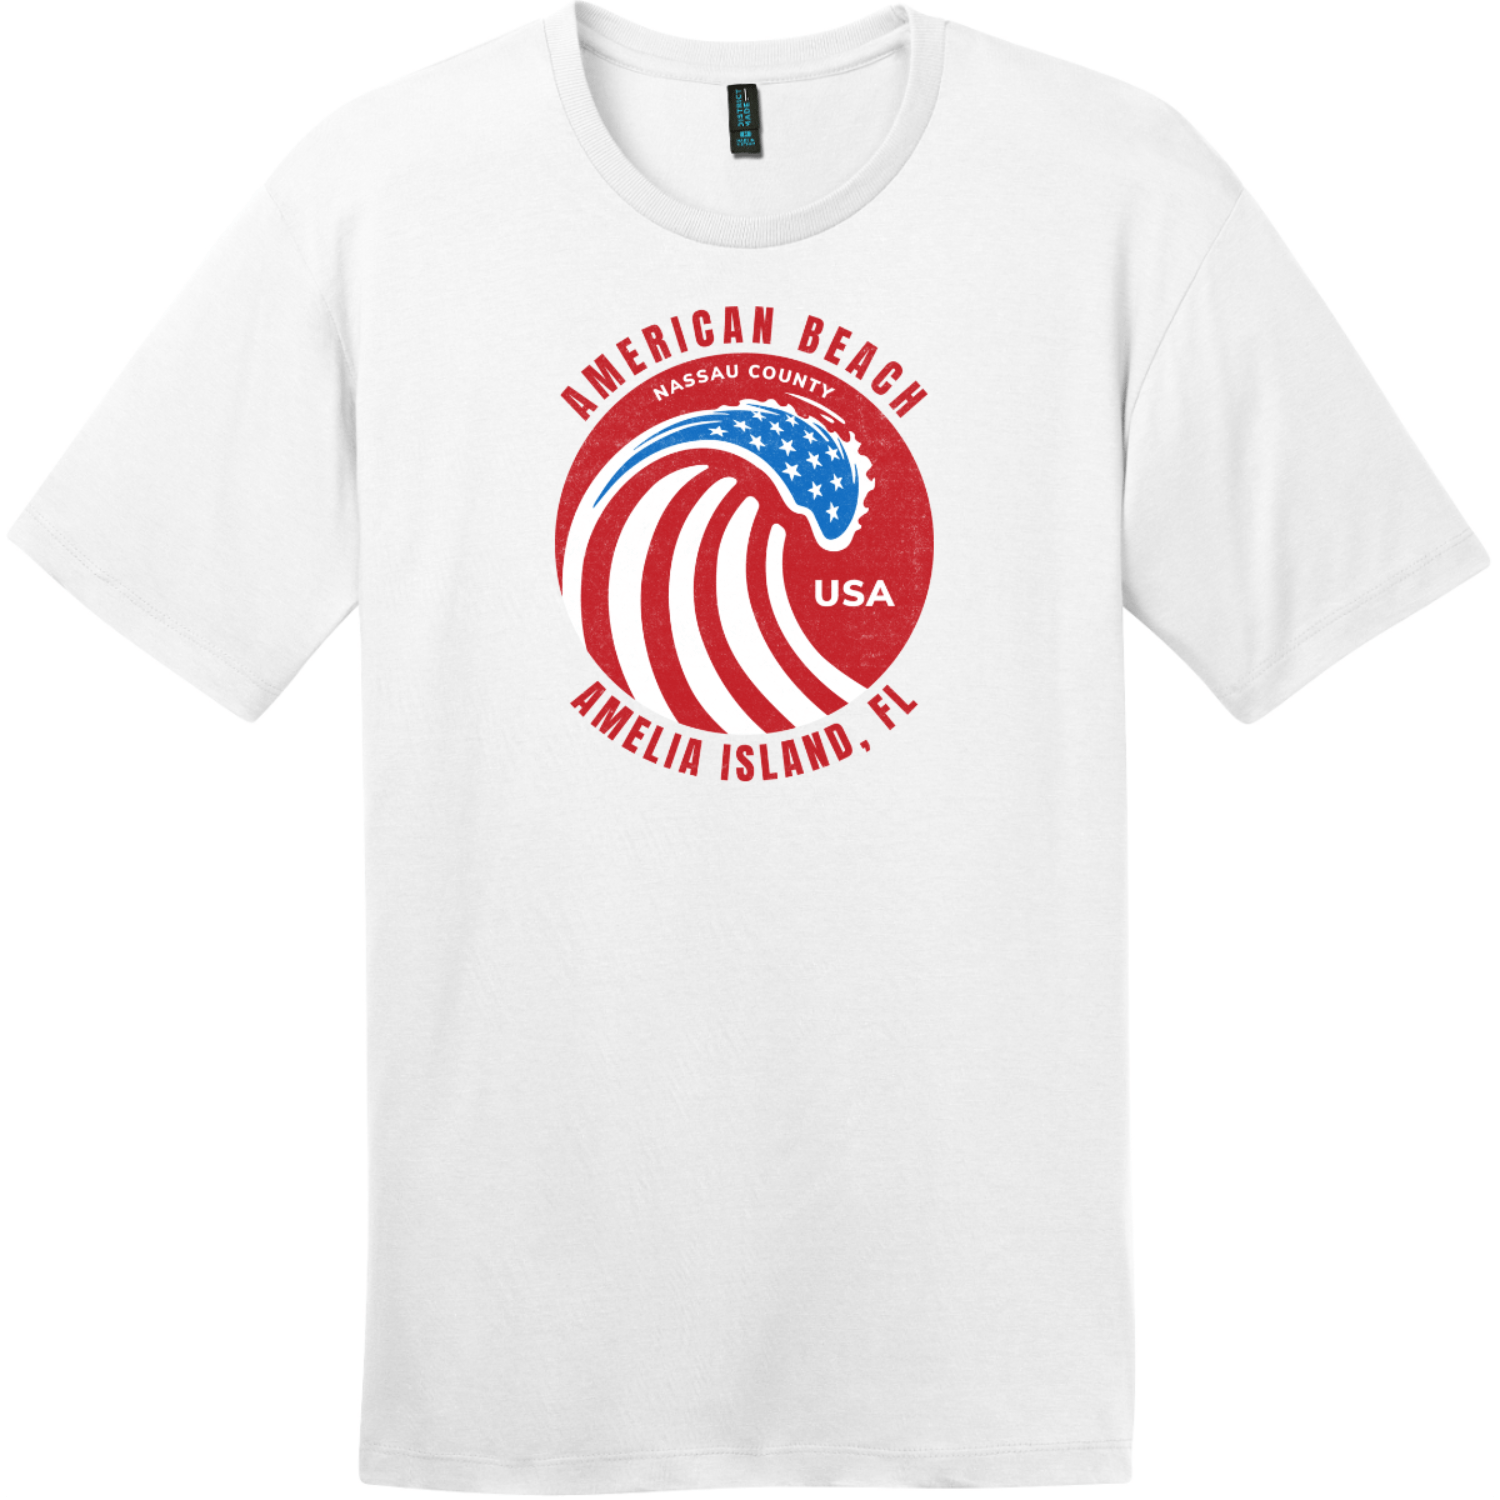 American Beach Amelia Island Vintage T-Shirt Bright White District Perfect Weight Tee DT104